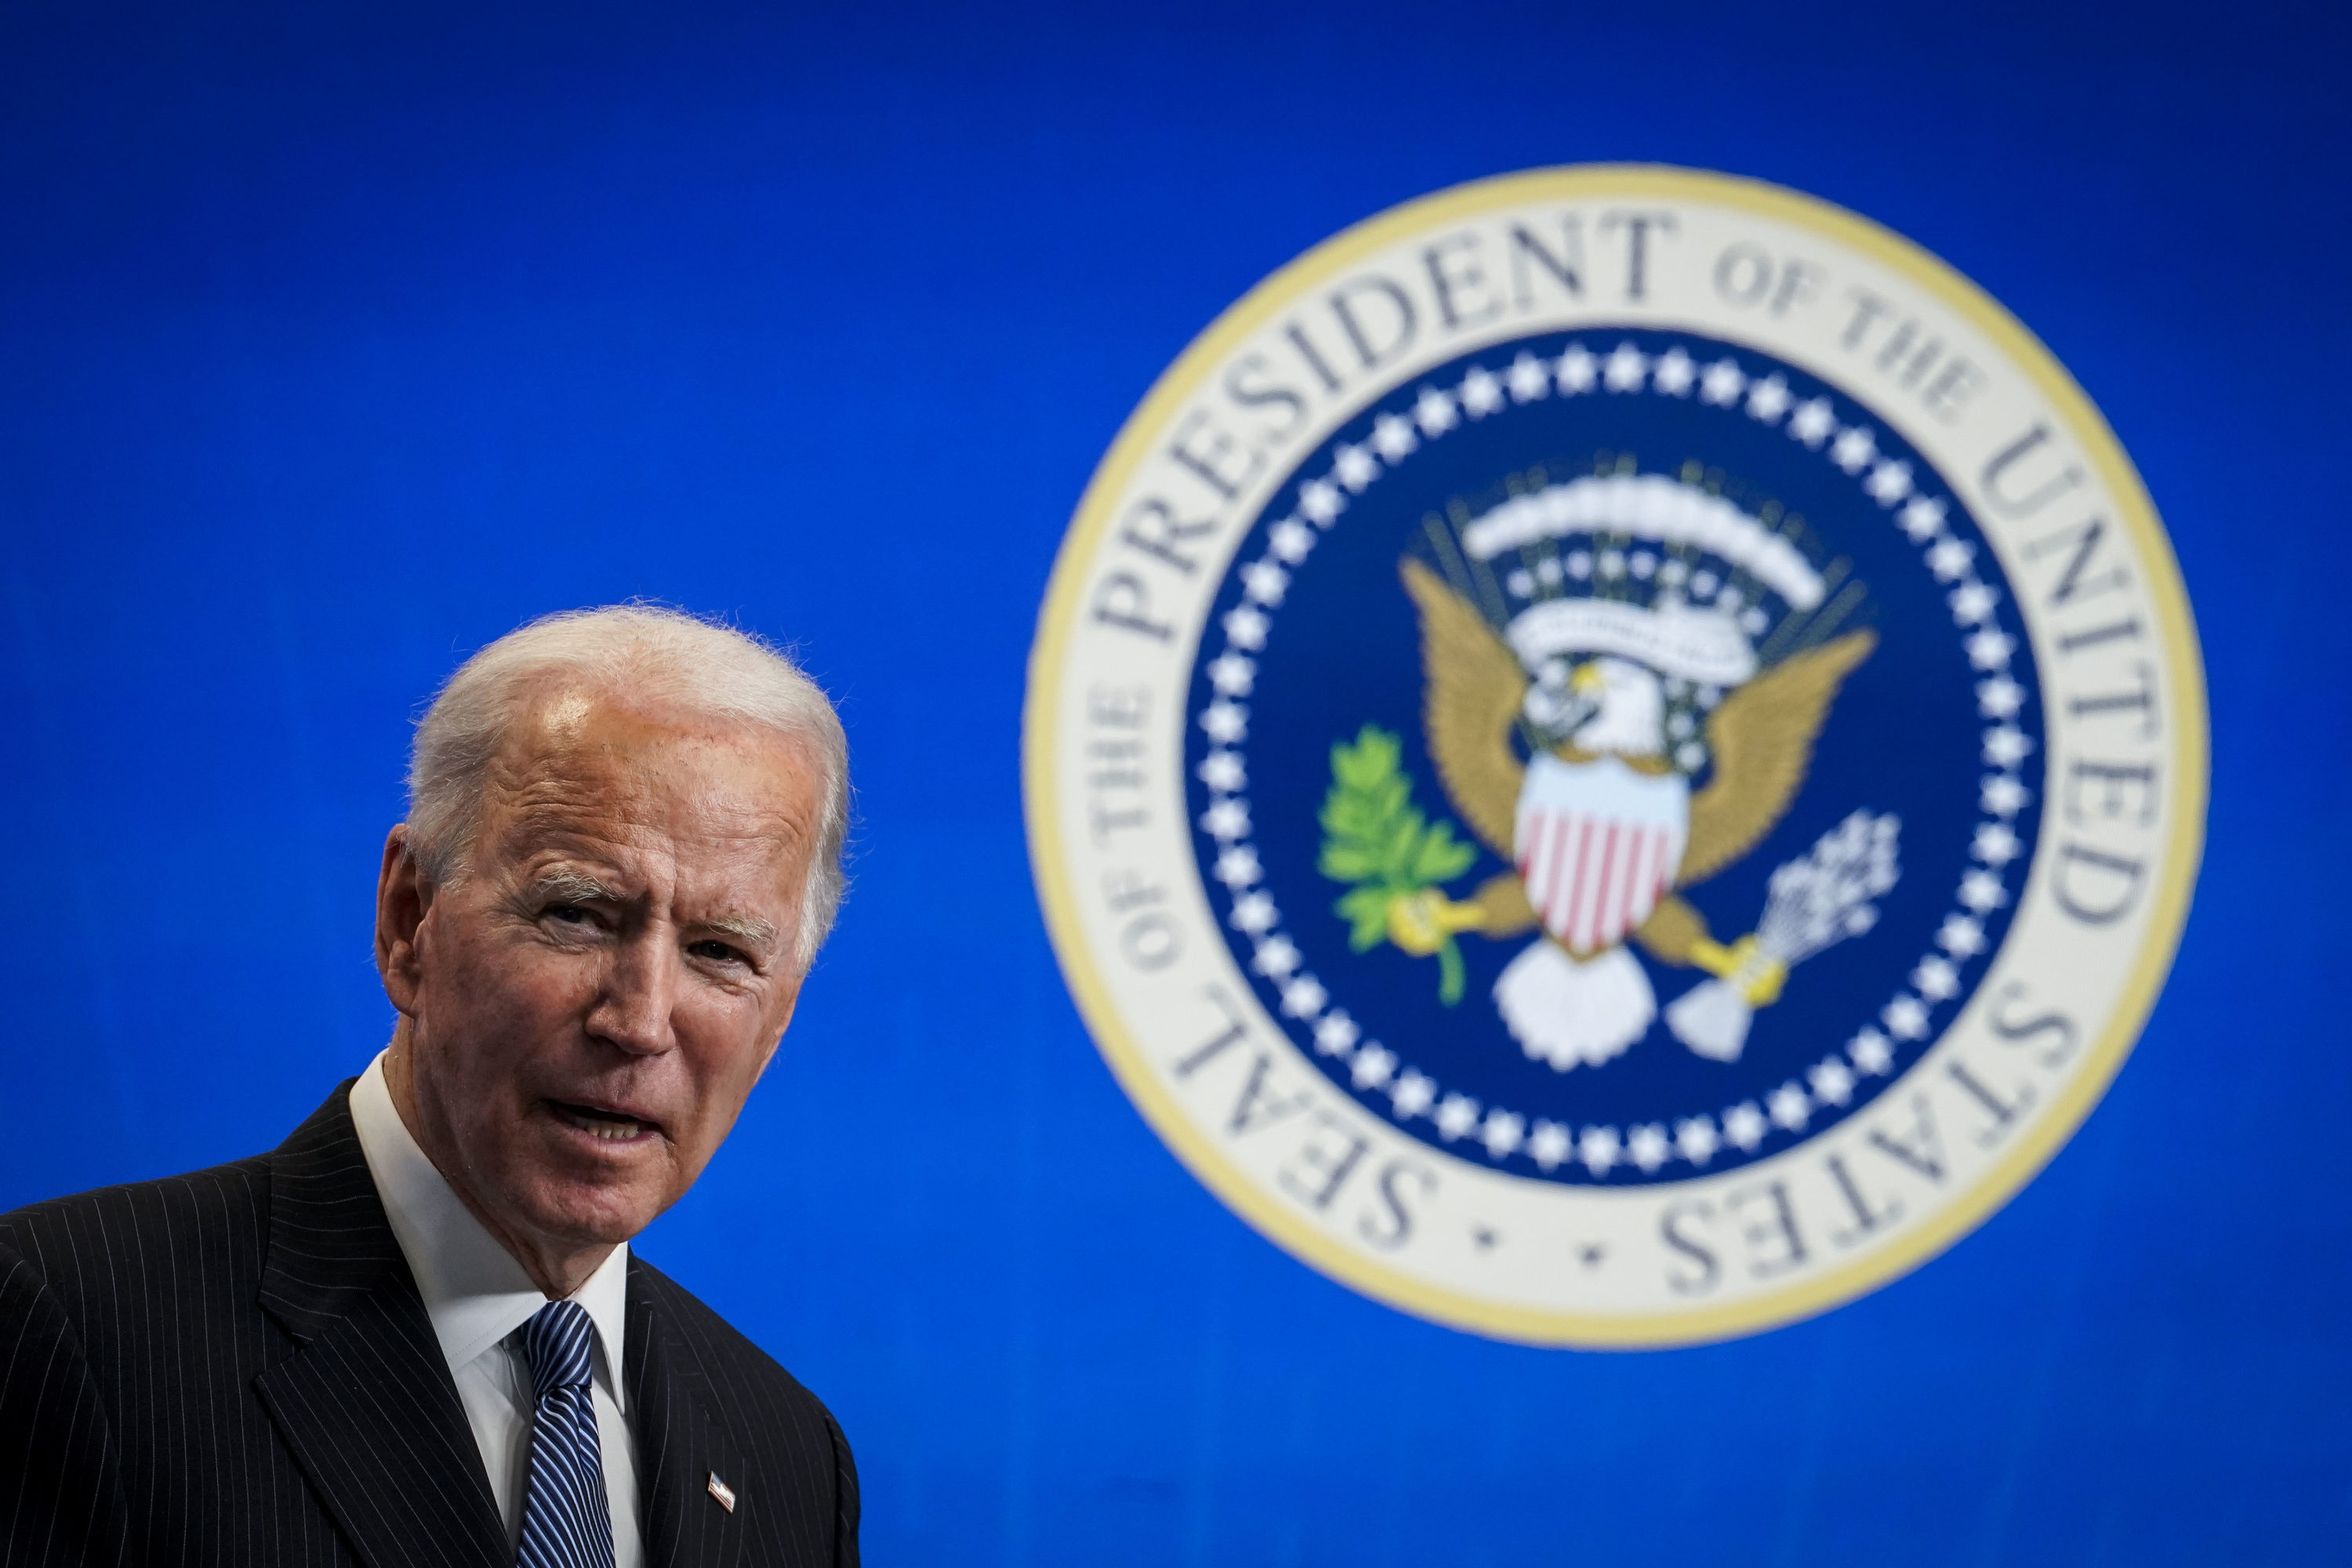 Republicans Make Me Proud I Voted for Biden - The Bulwark